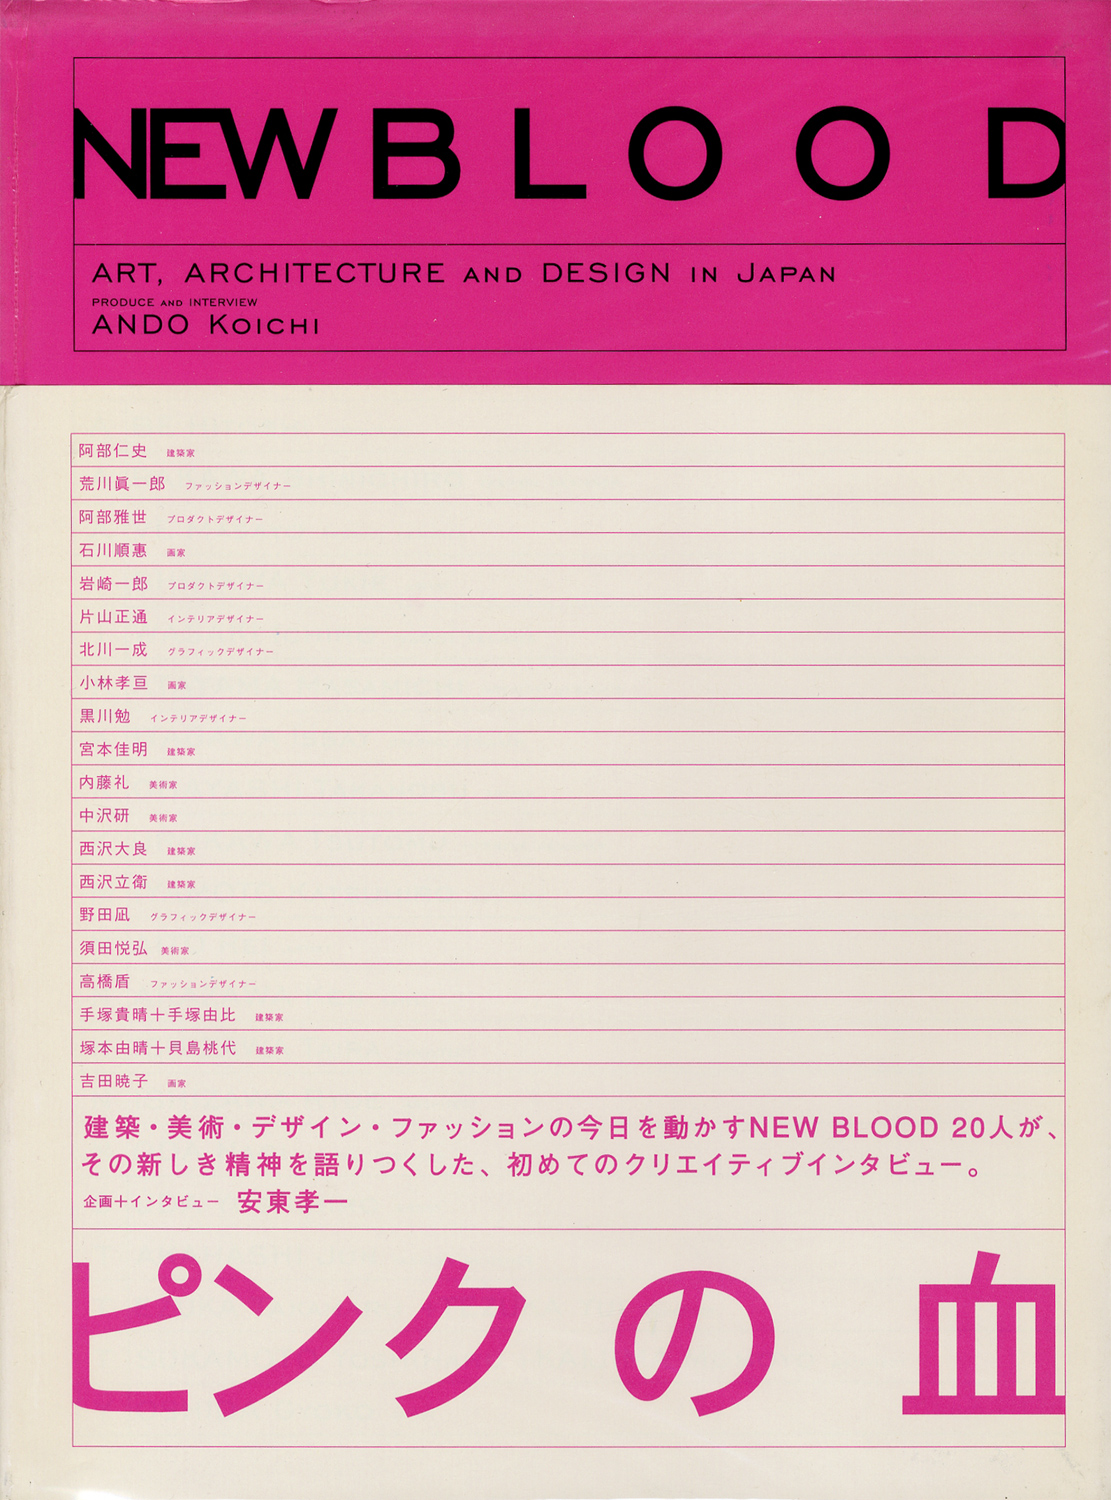 NEW BLOOD ART、 ARCHITECTURE AND DISIGN IN JAPAN